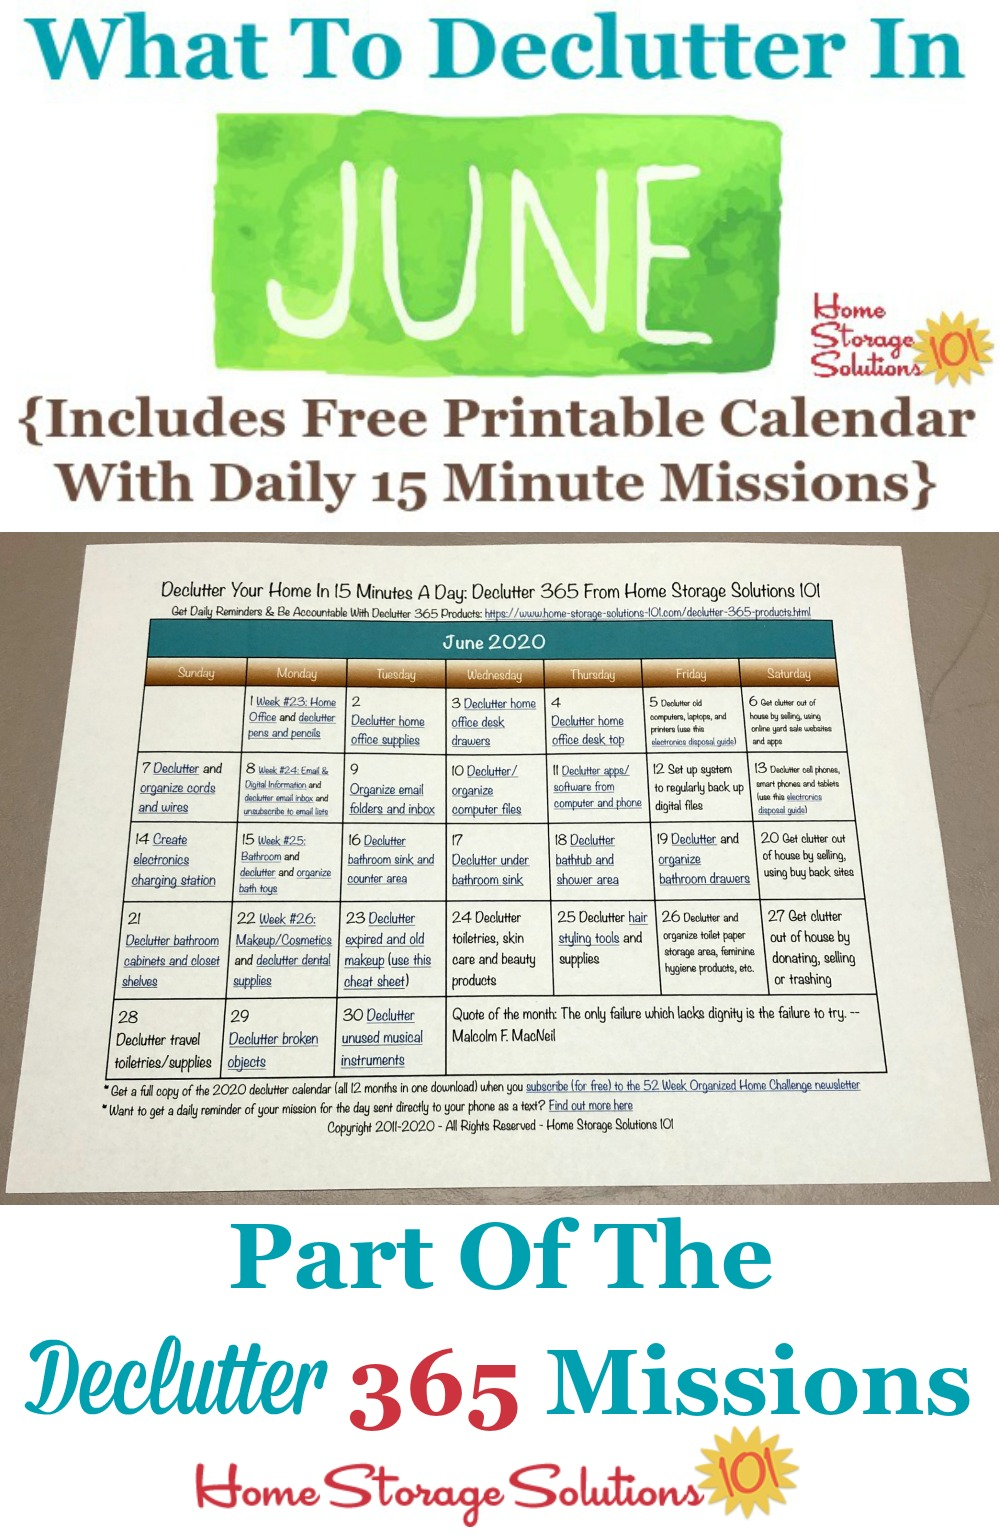 What to declutter in June 2020, including a free printable June decluttering calendar you can follow each day {on Home Storage Solutions 101} #Declutter365 #Decluttering #Declutter